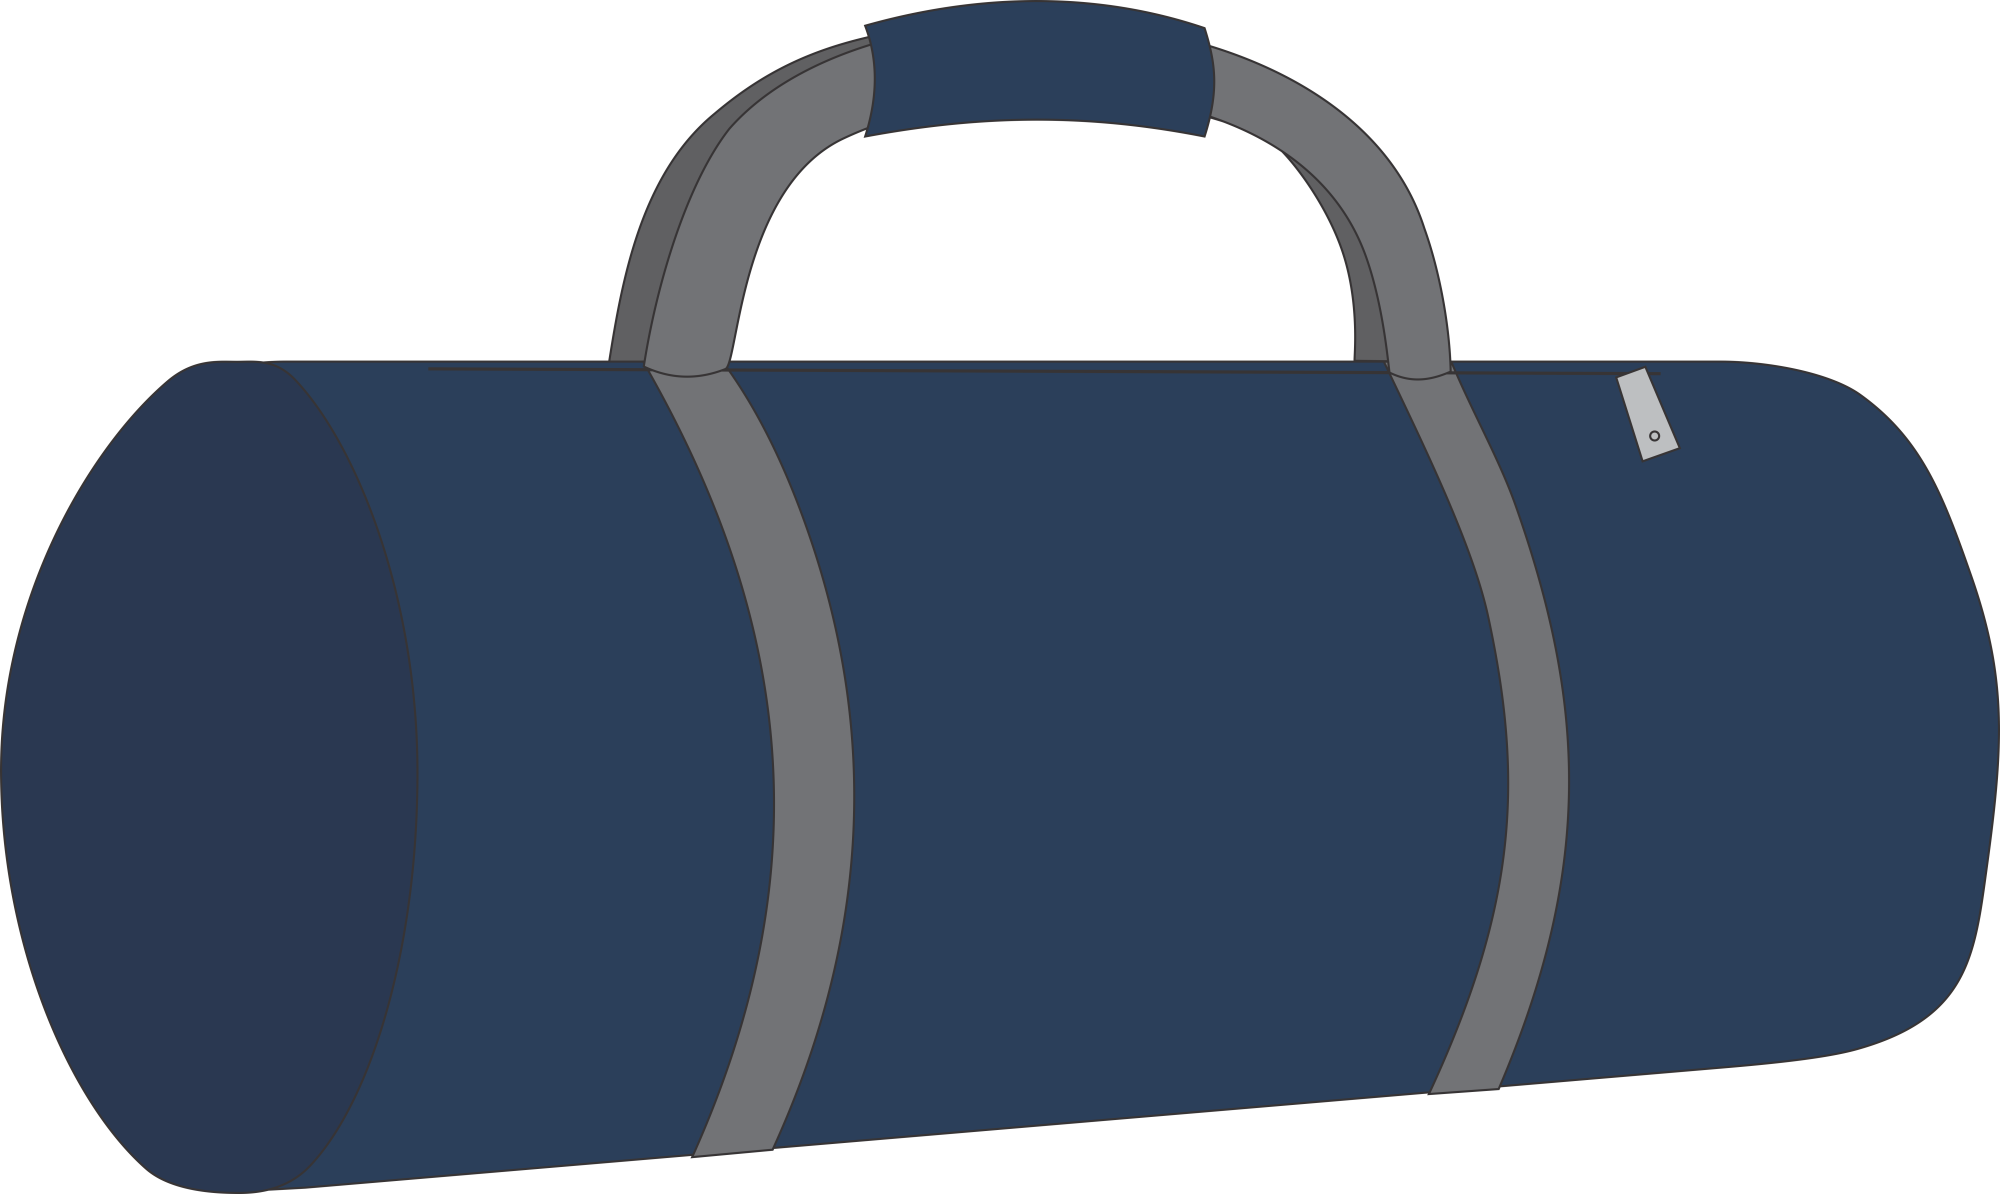 What Can You Use Duffle Bags For?